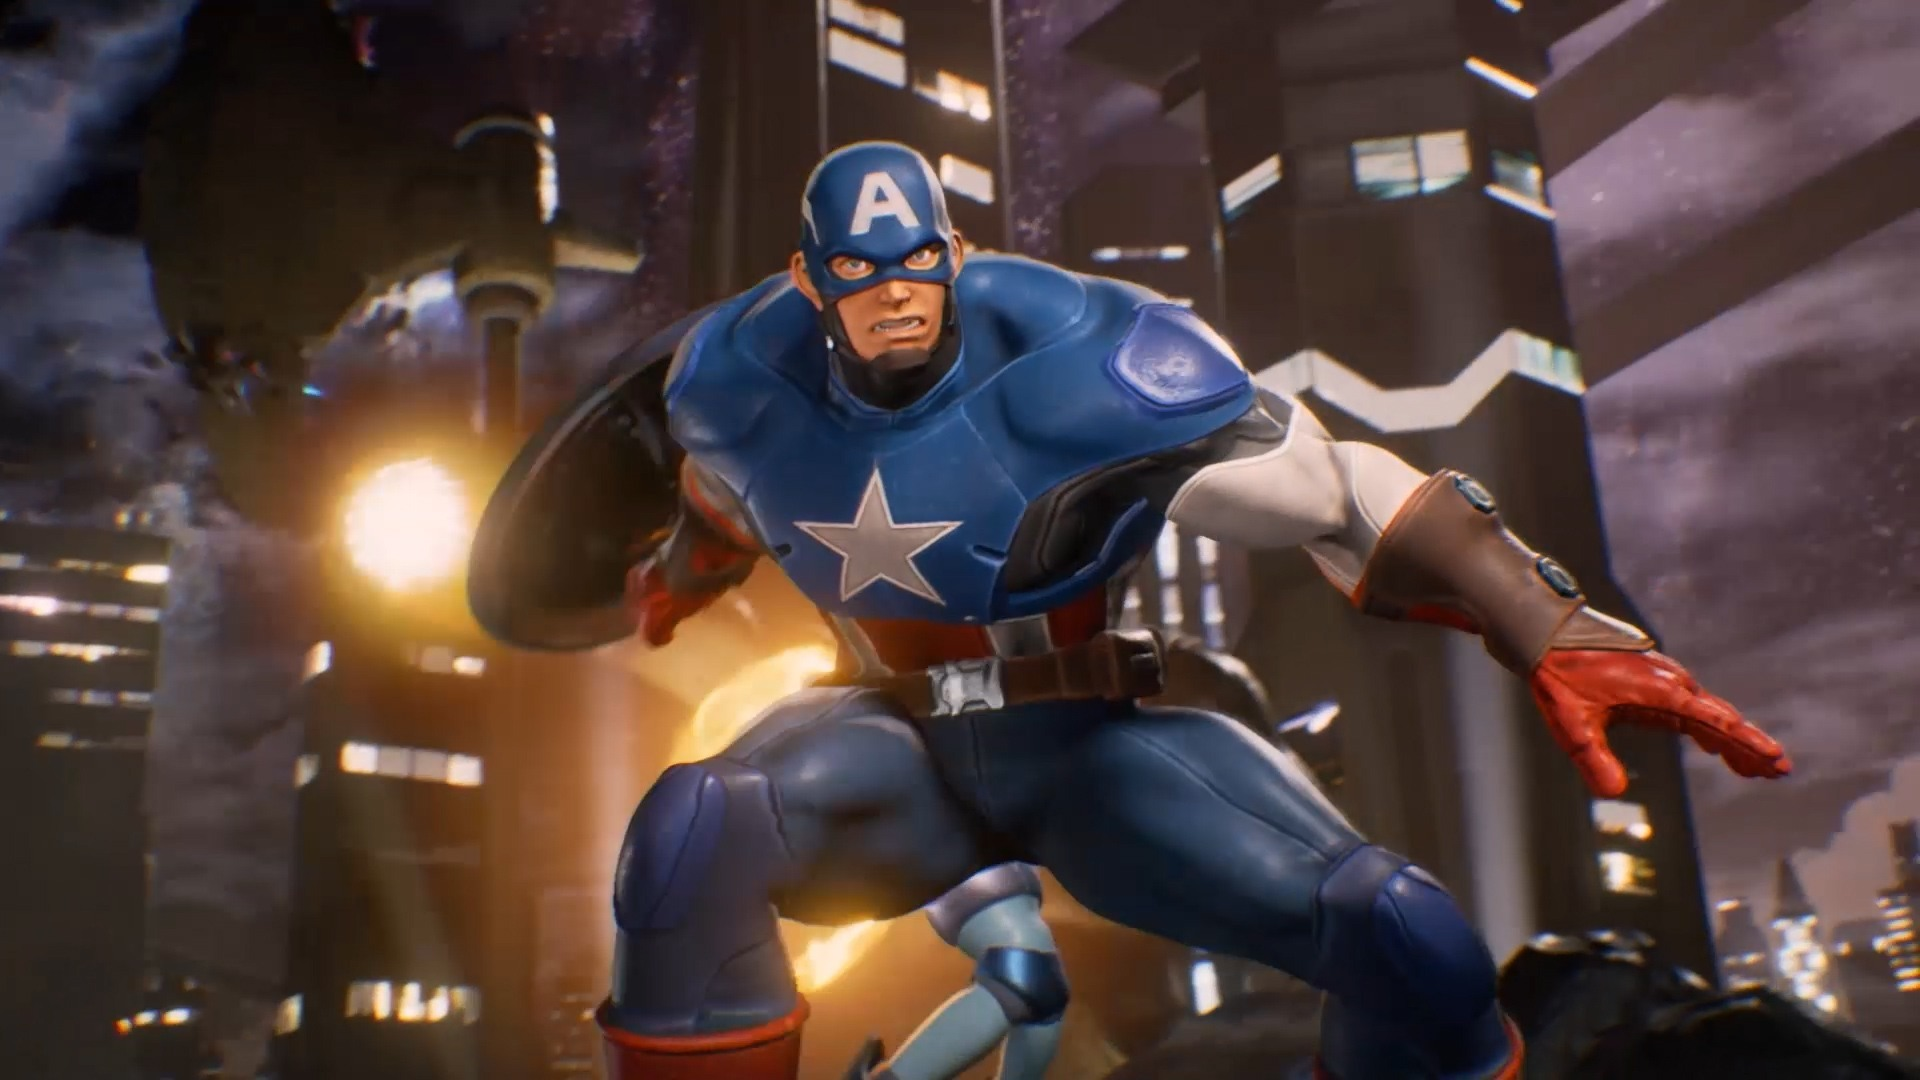 Entendendo as mecânicas de Marvel Vs. Capcom Infinite